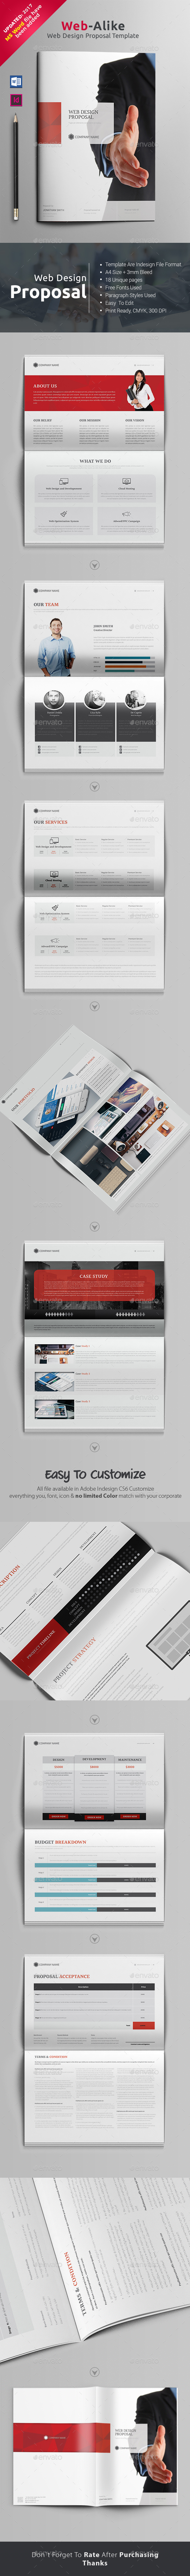 Web Proposal Word - Proposals & Invoices Stationery